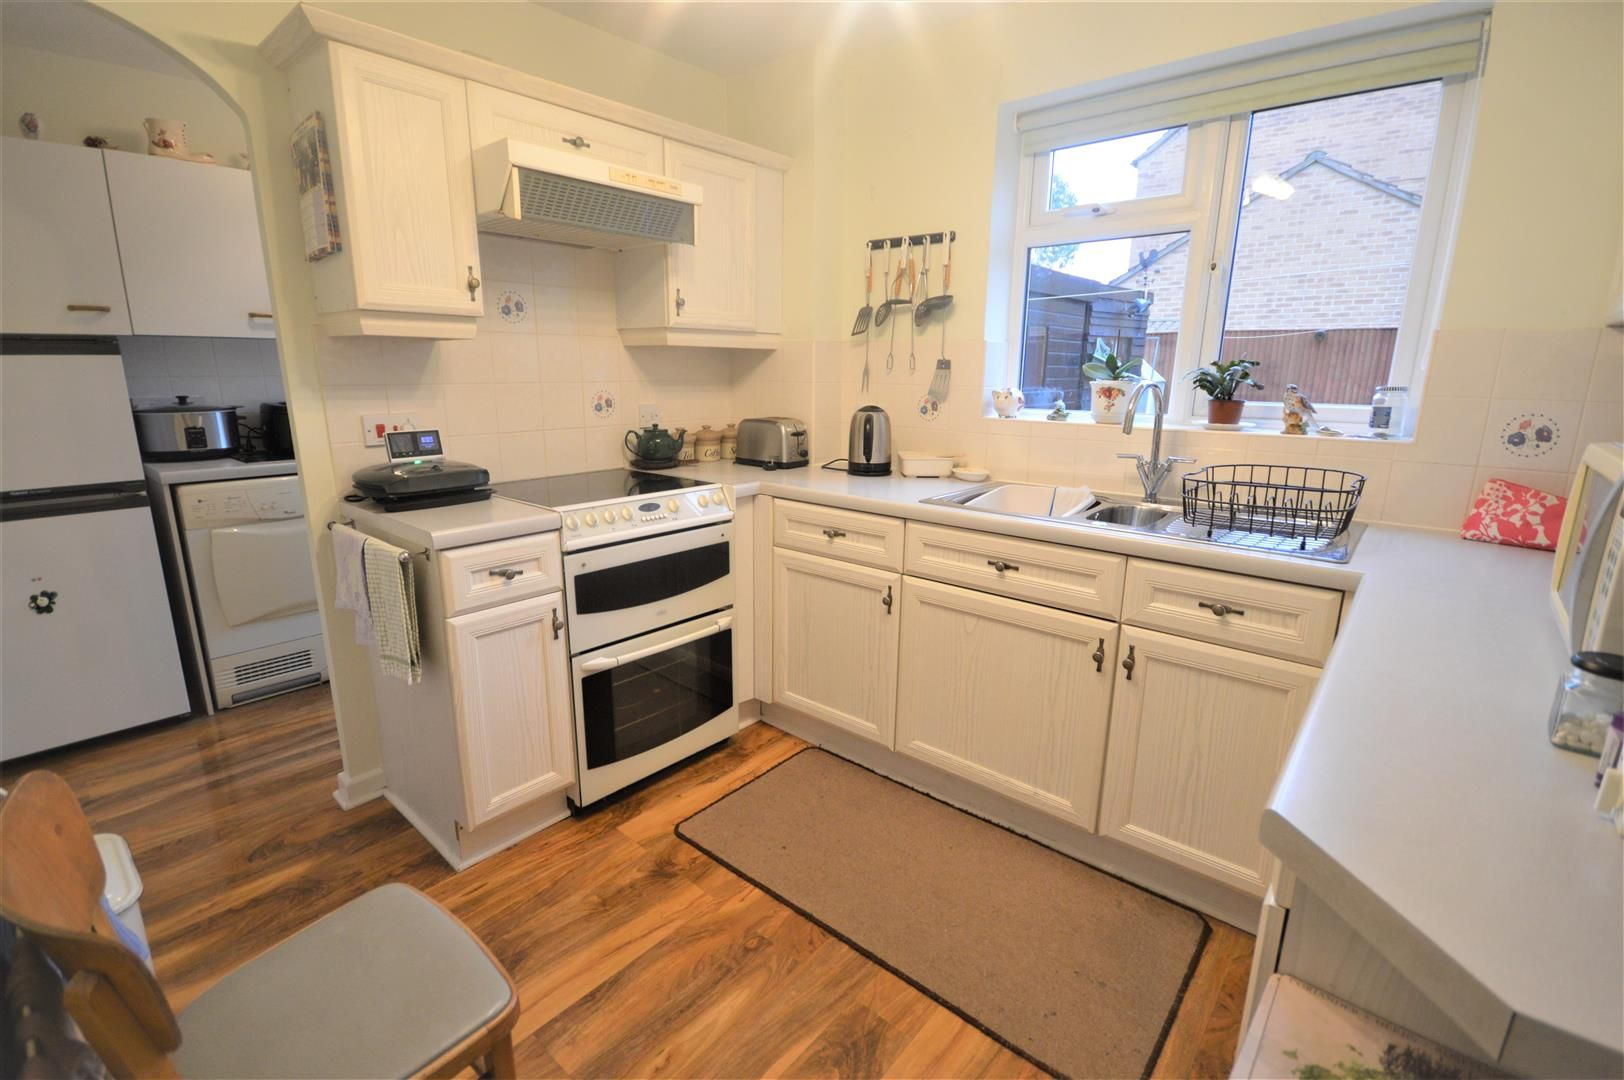 3 bed detached for sale in Leominster 3